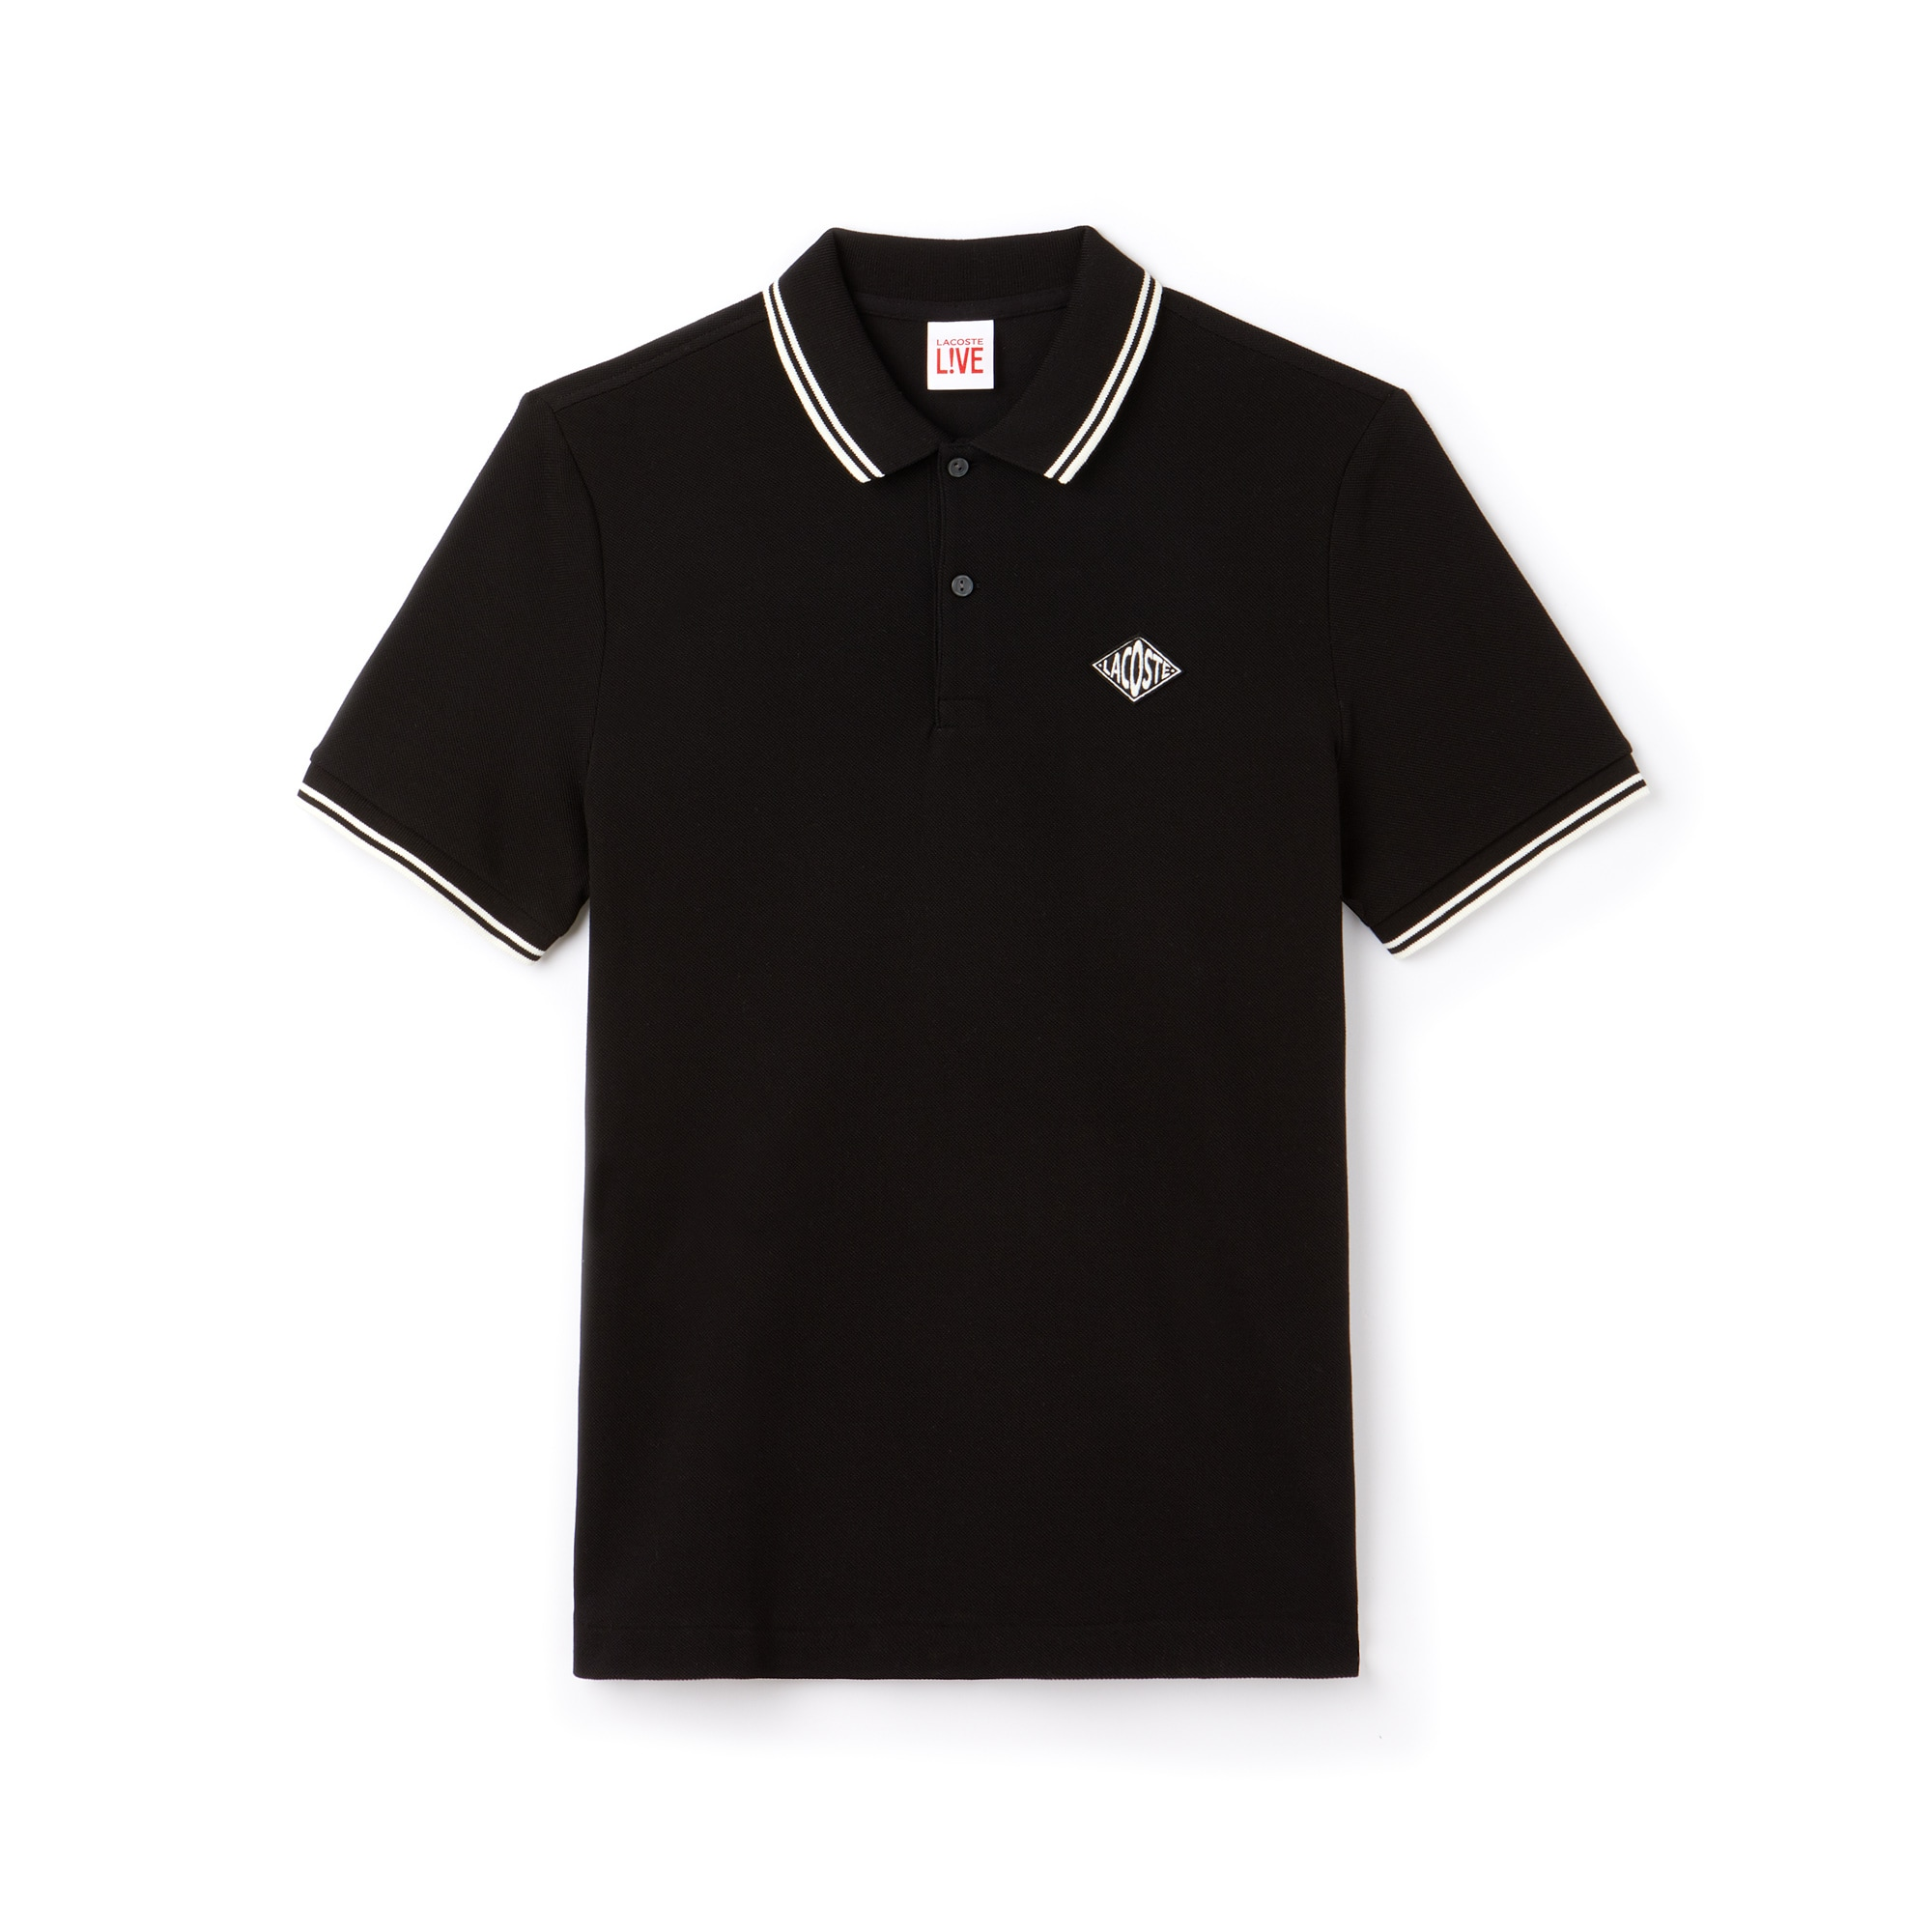 Men's LIVE Slim Fit Bands And Badge Cotton Petit Piqué Polo